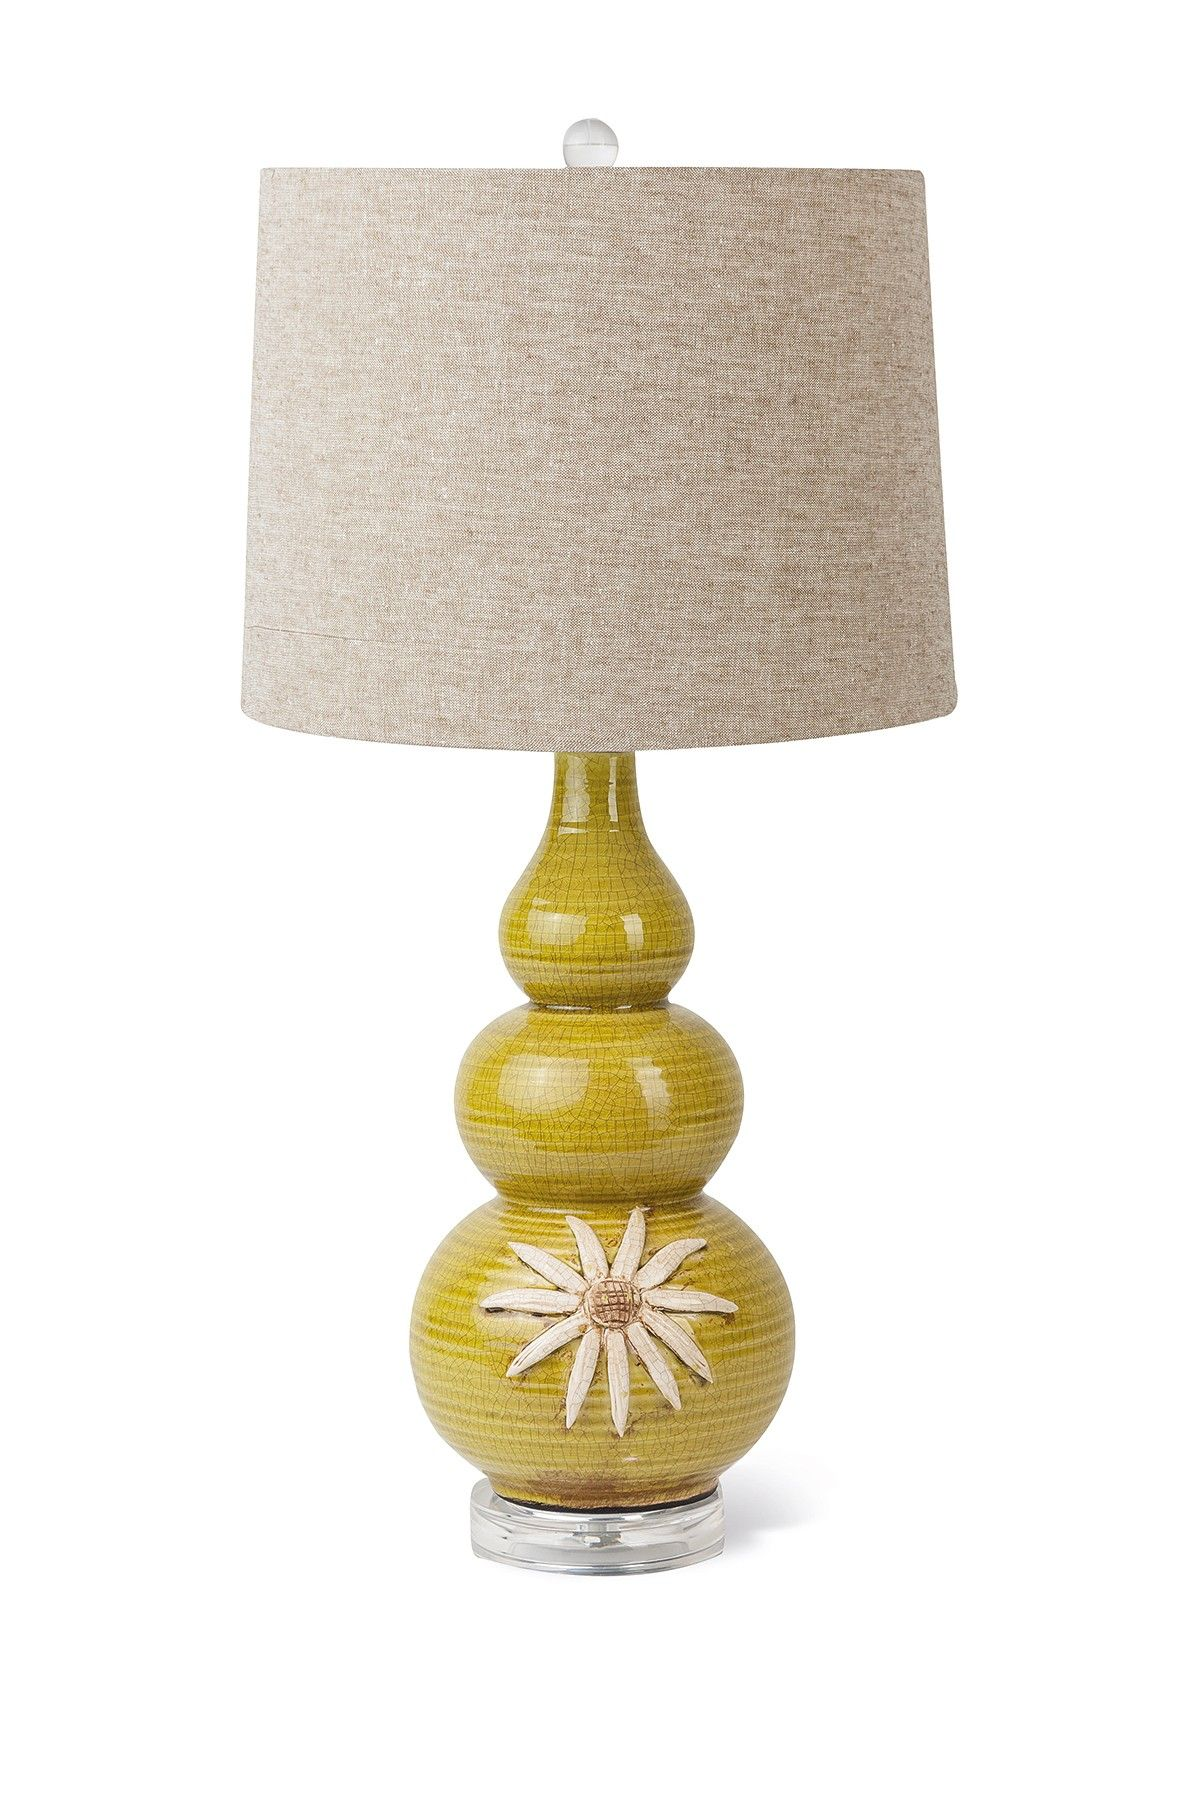 Transpac Imports | Ceramic Green Flower Lamp | Sponsored by Nordstrom Rack.